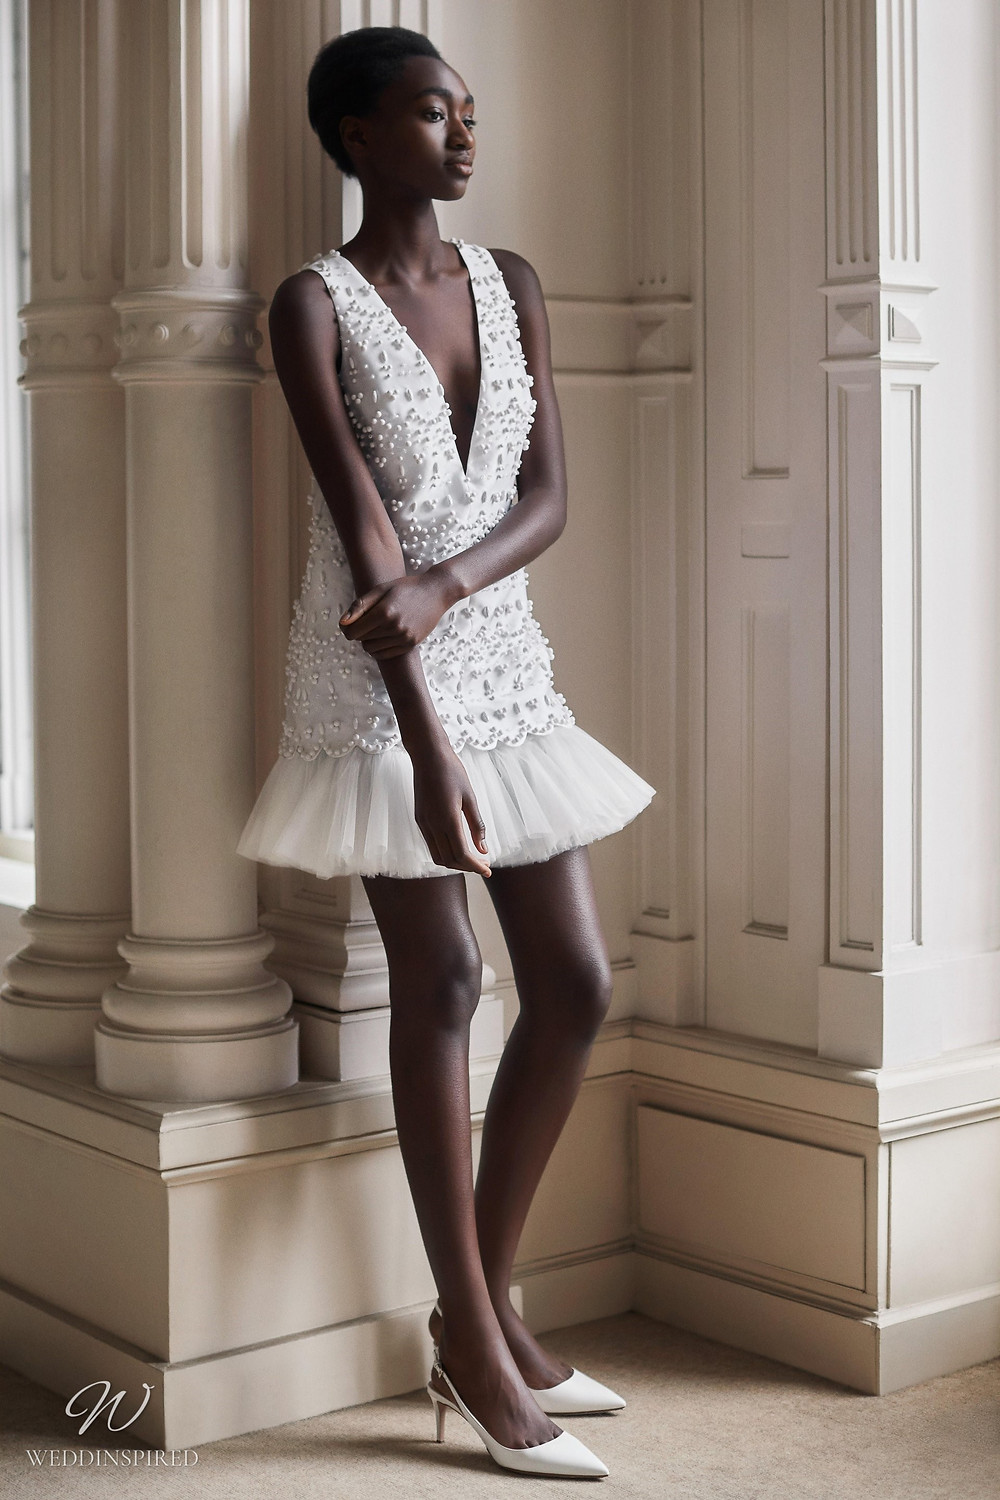 A Viktor & Rolf 2021 short wedding dress with tulle ruffles and beading